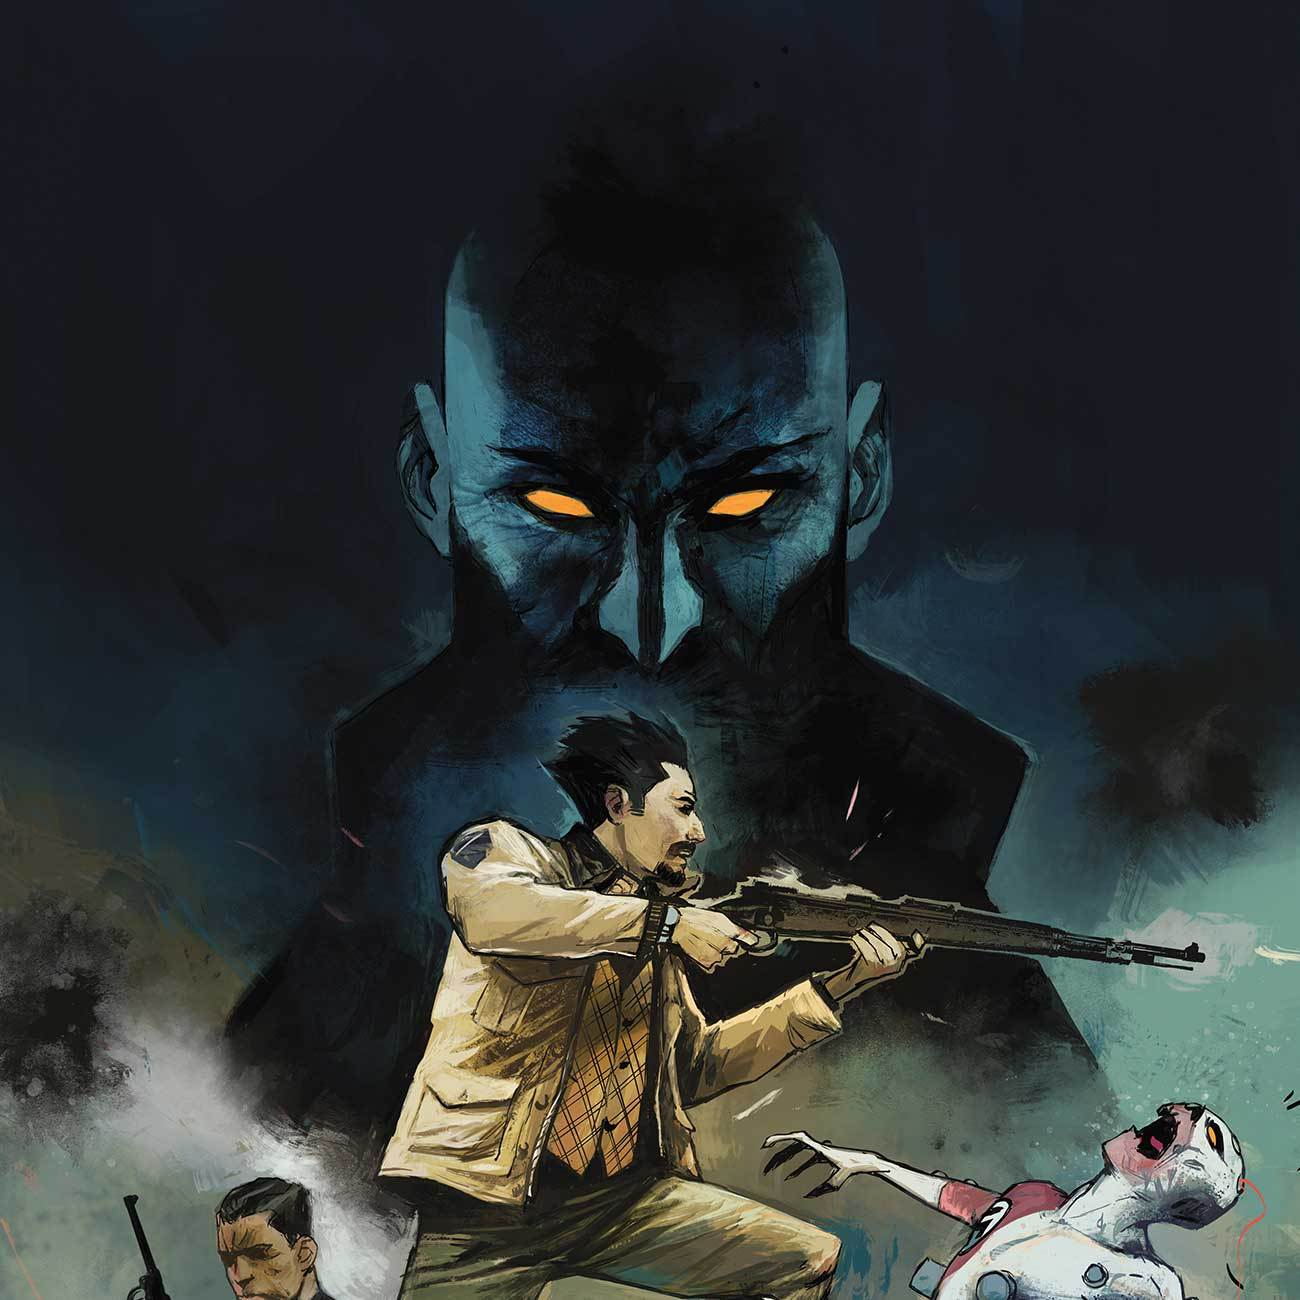 The fast pace and good action scenes come complete with interesting backstories. Get it!